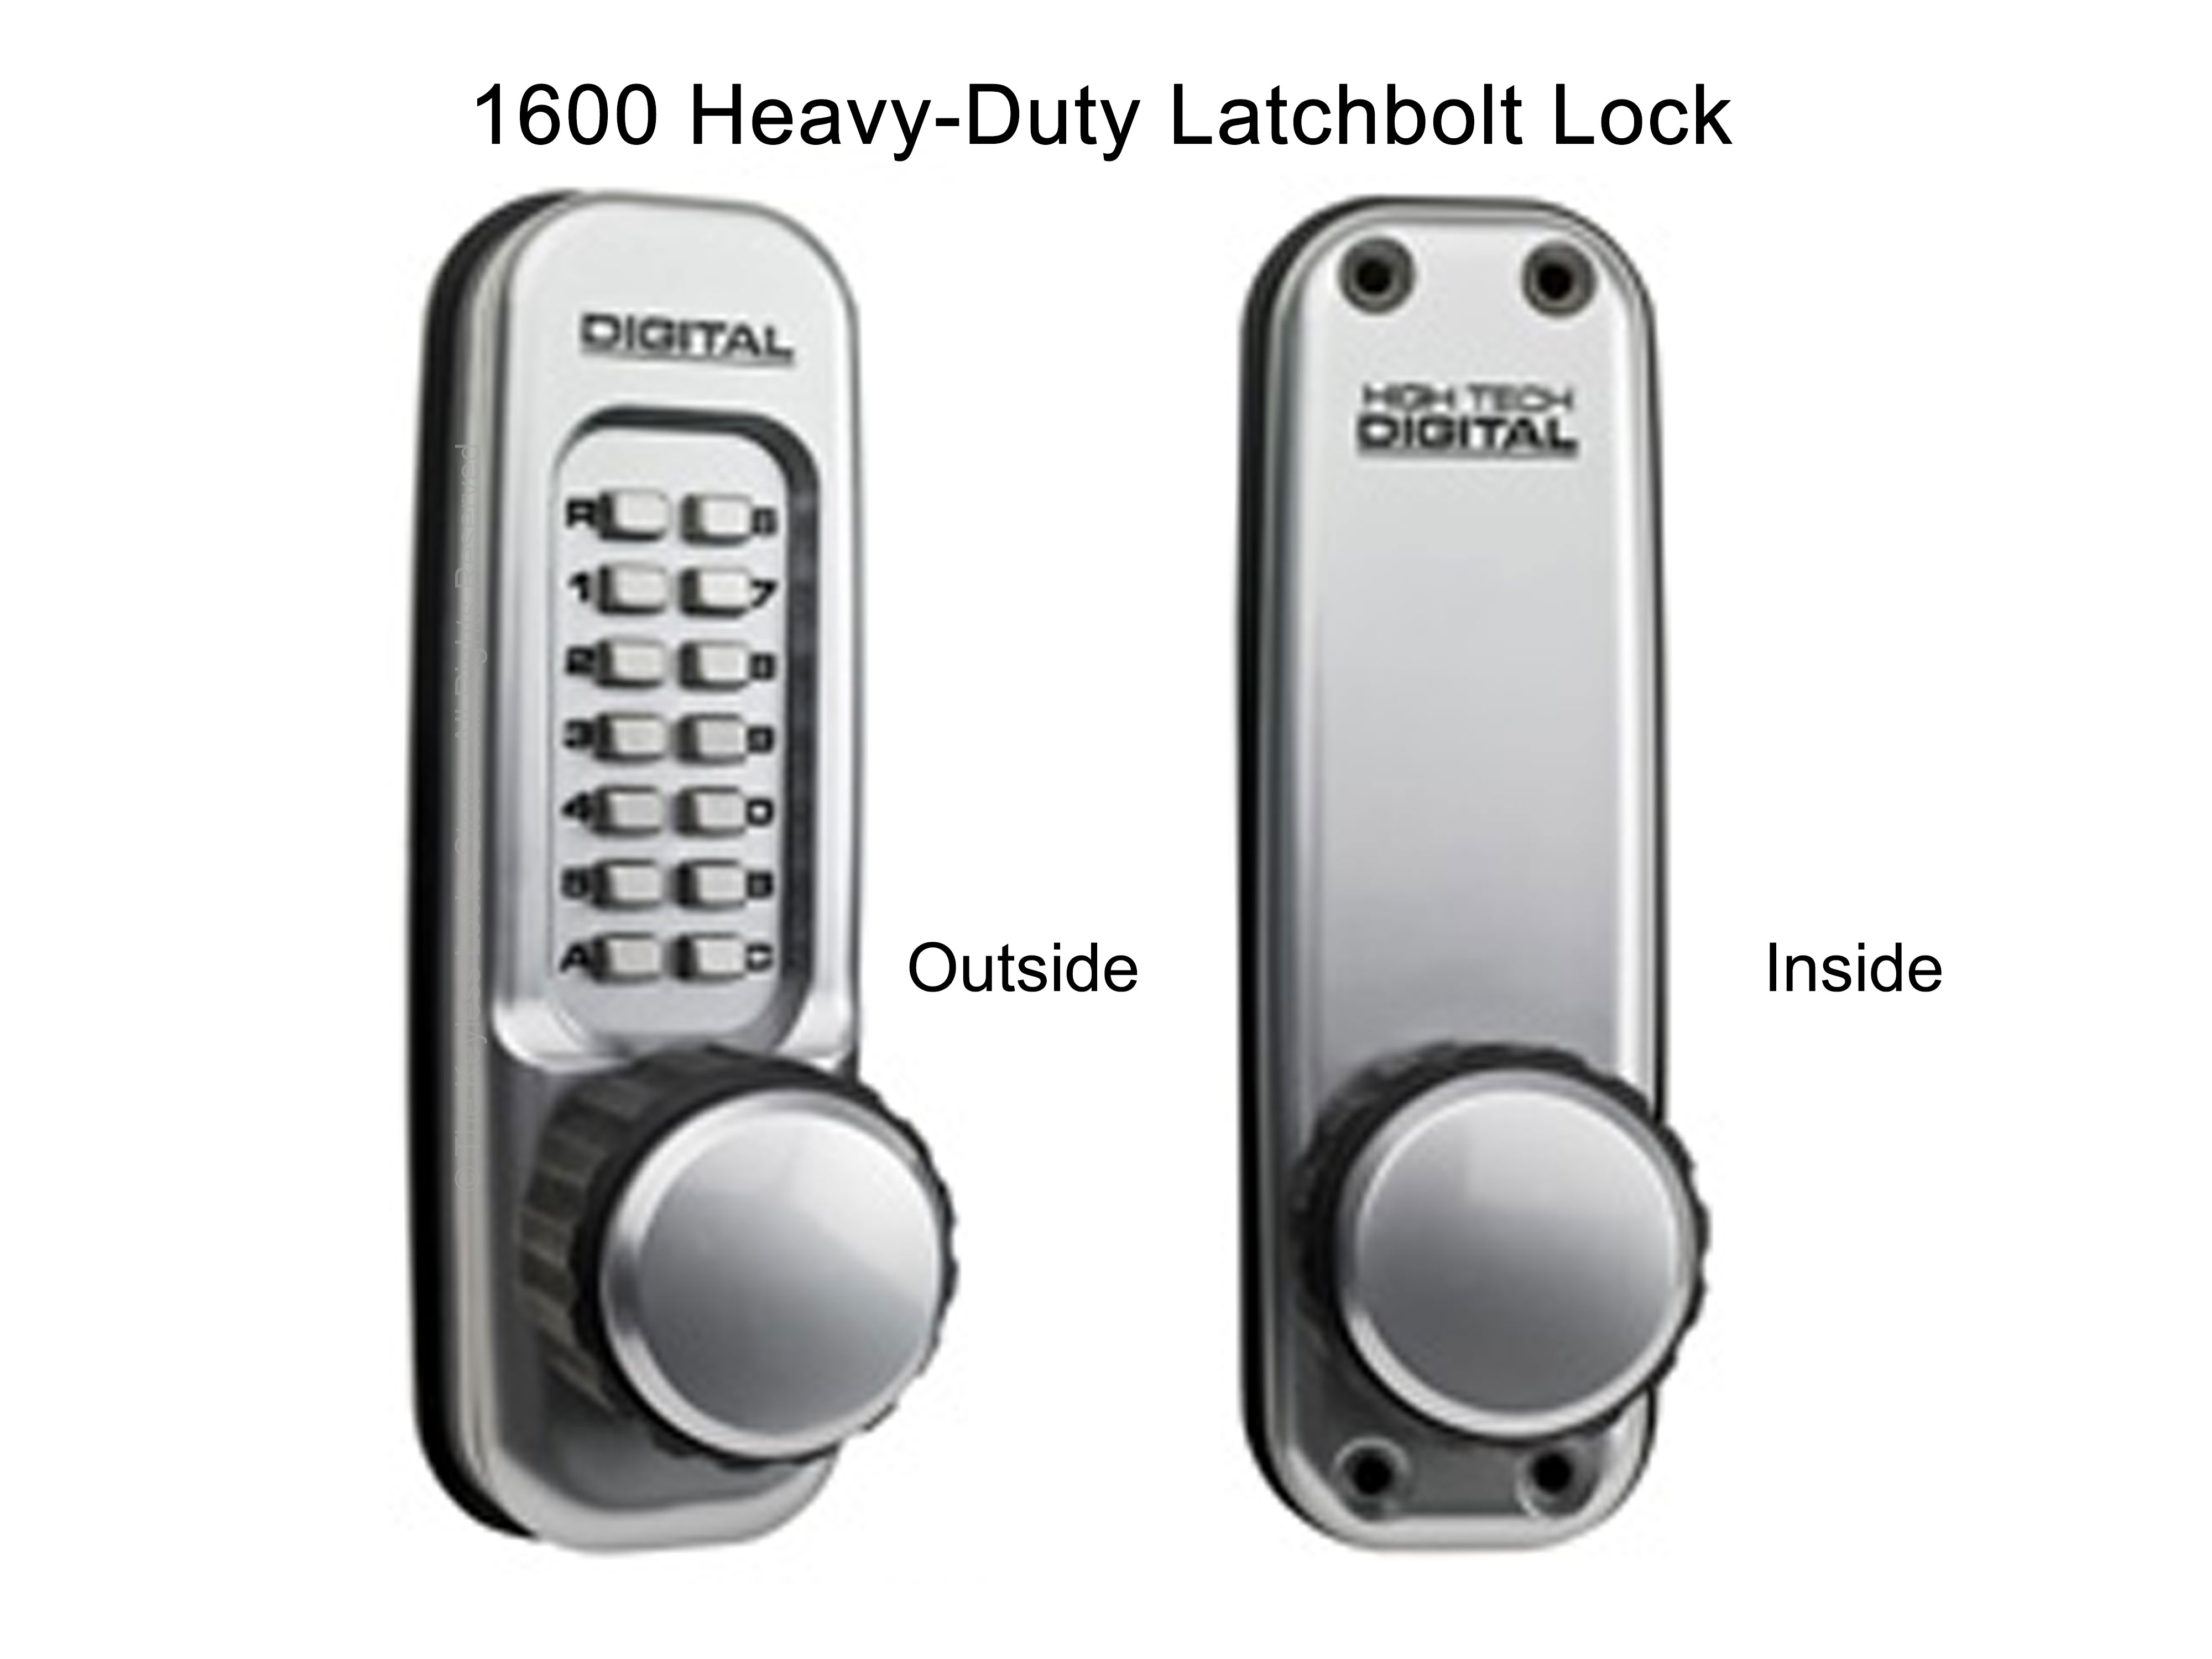 Lockey 1600 Heavy-Duty Knob-Handle Latchbolt Keypad Lock